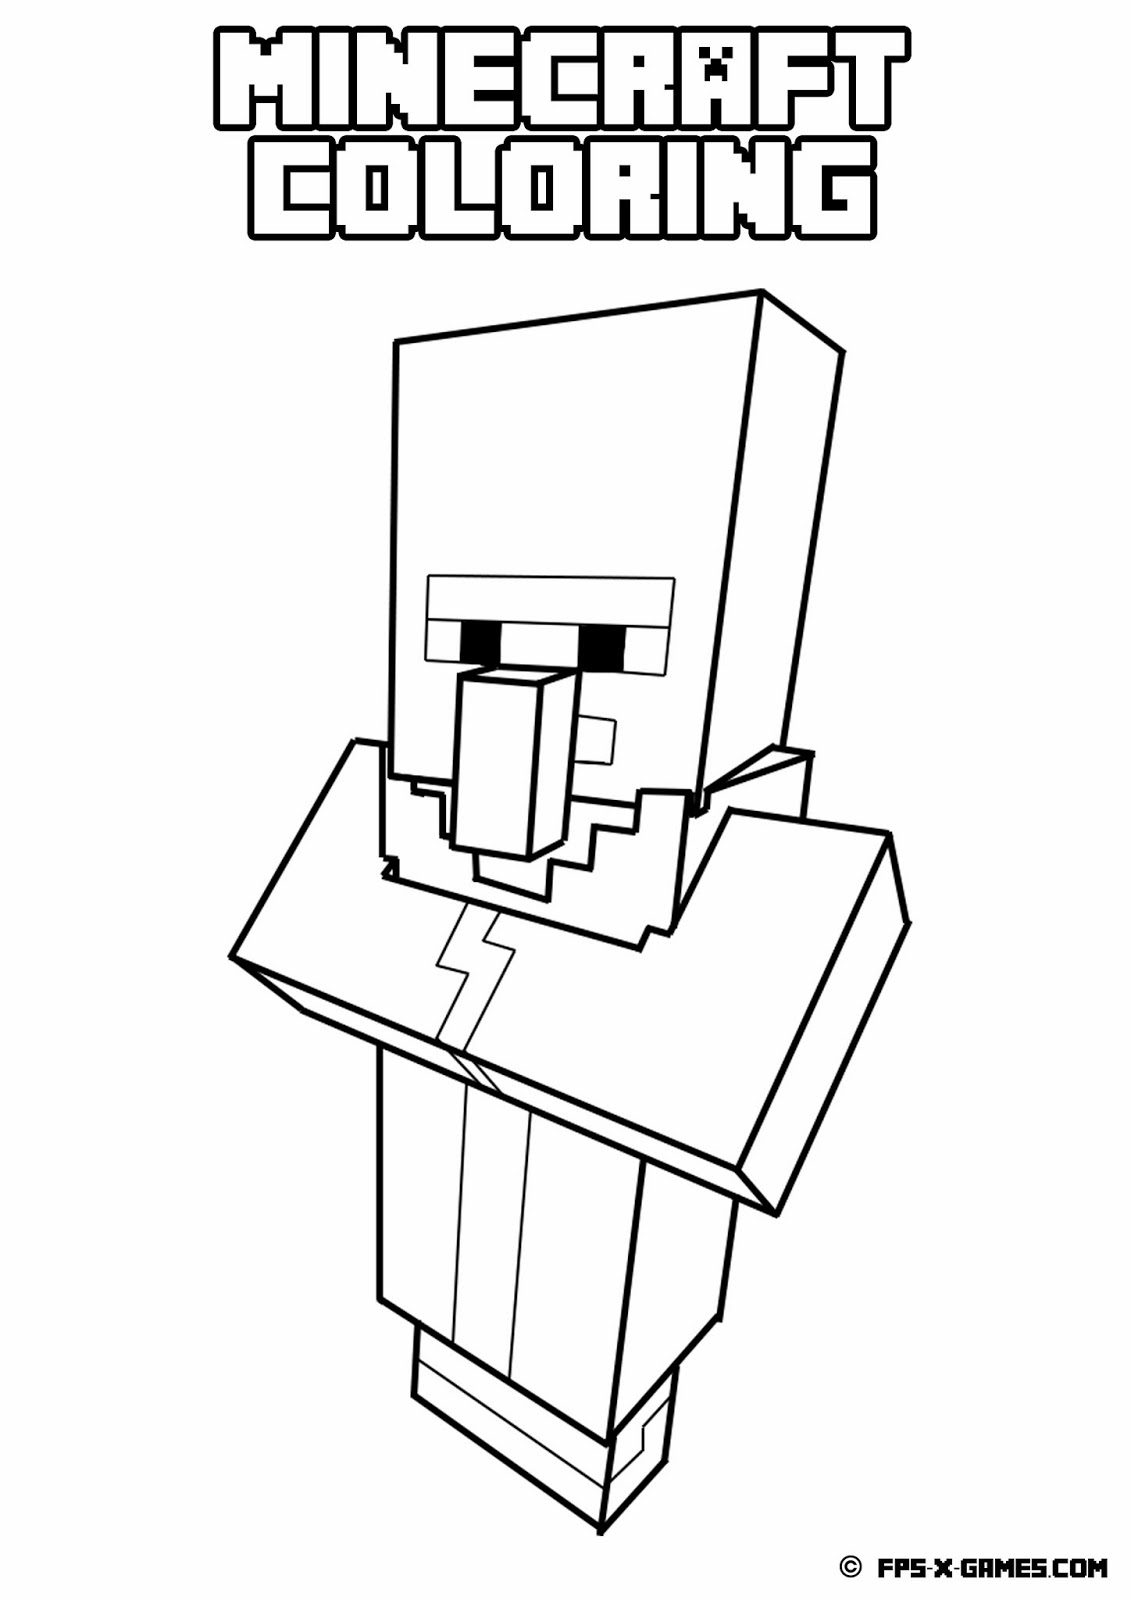 images of minecraft coloring pages mine craft coloring pages minecraft sword coloring pages images coloring pages of minecraft